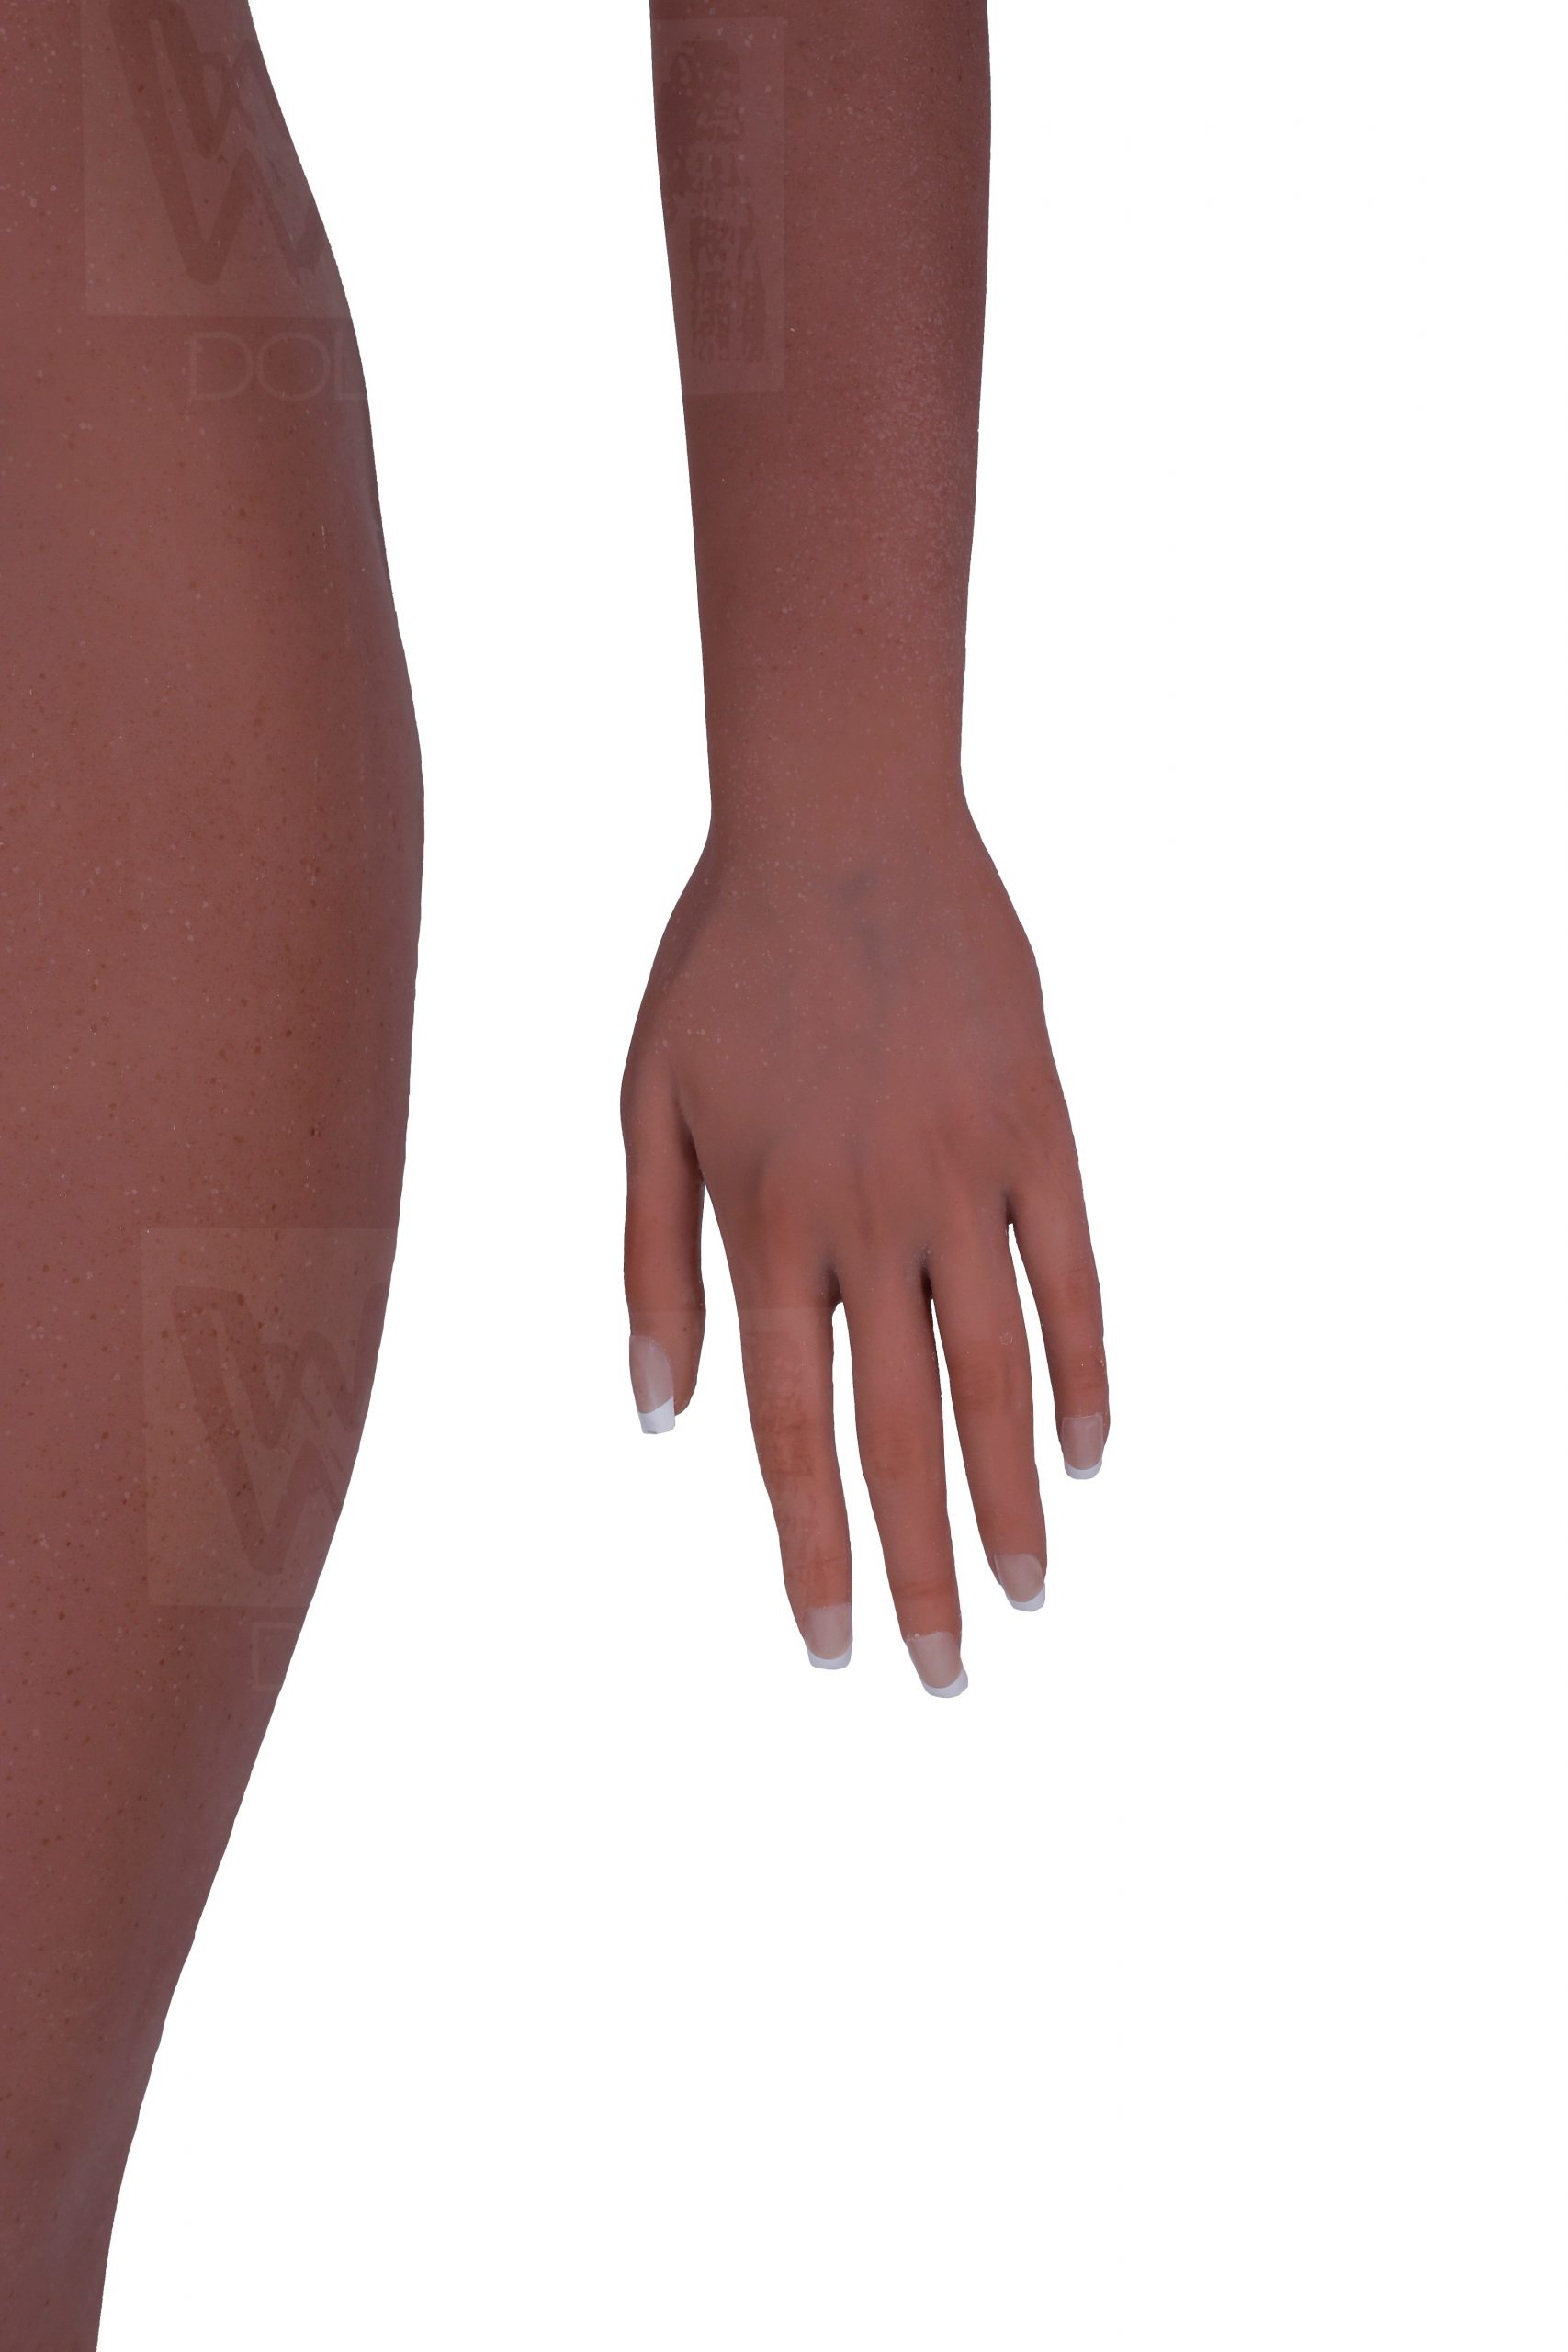 realistic tanned tpe skin